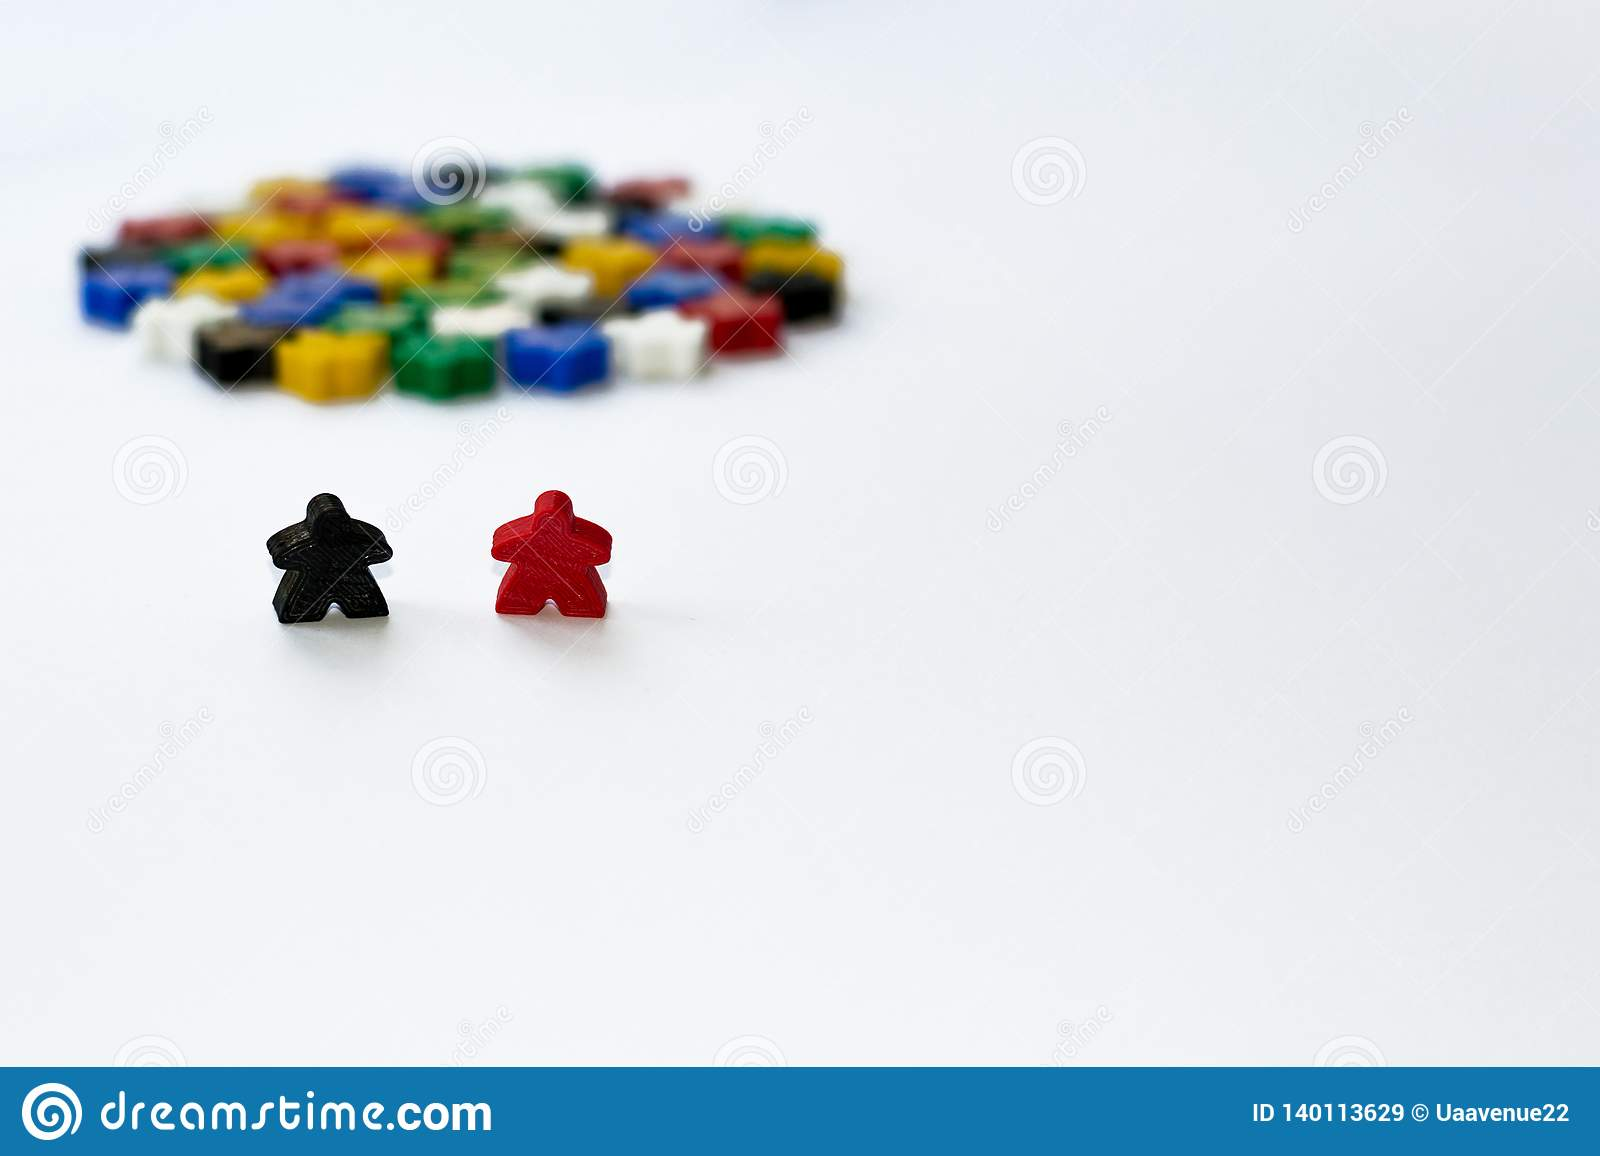 Small figures of man. Board games concept. Couple of leaders of community. Business strategy. Components of card games, friends,